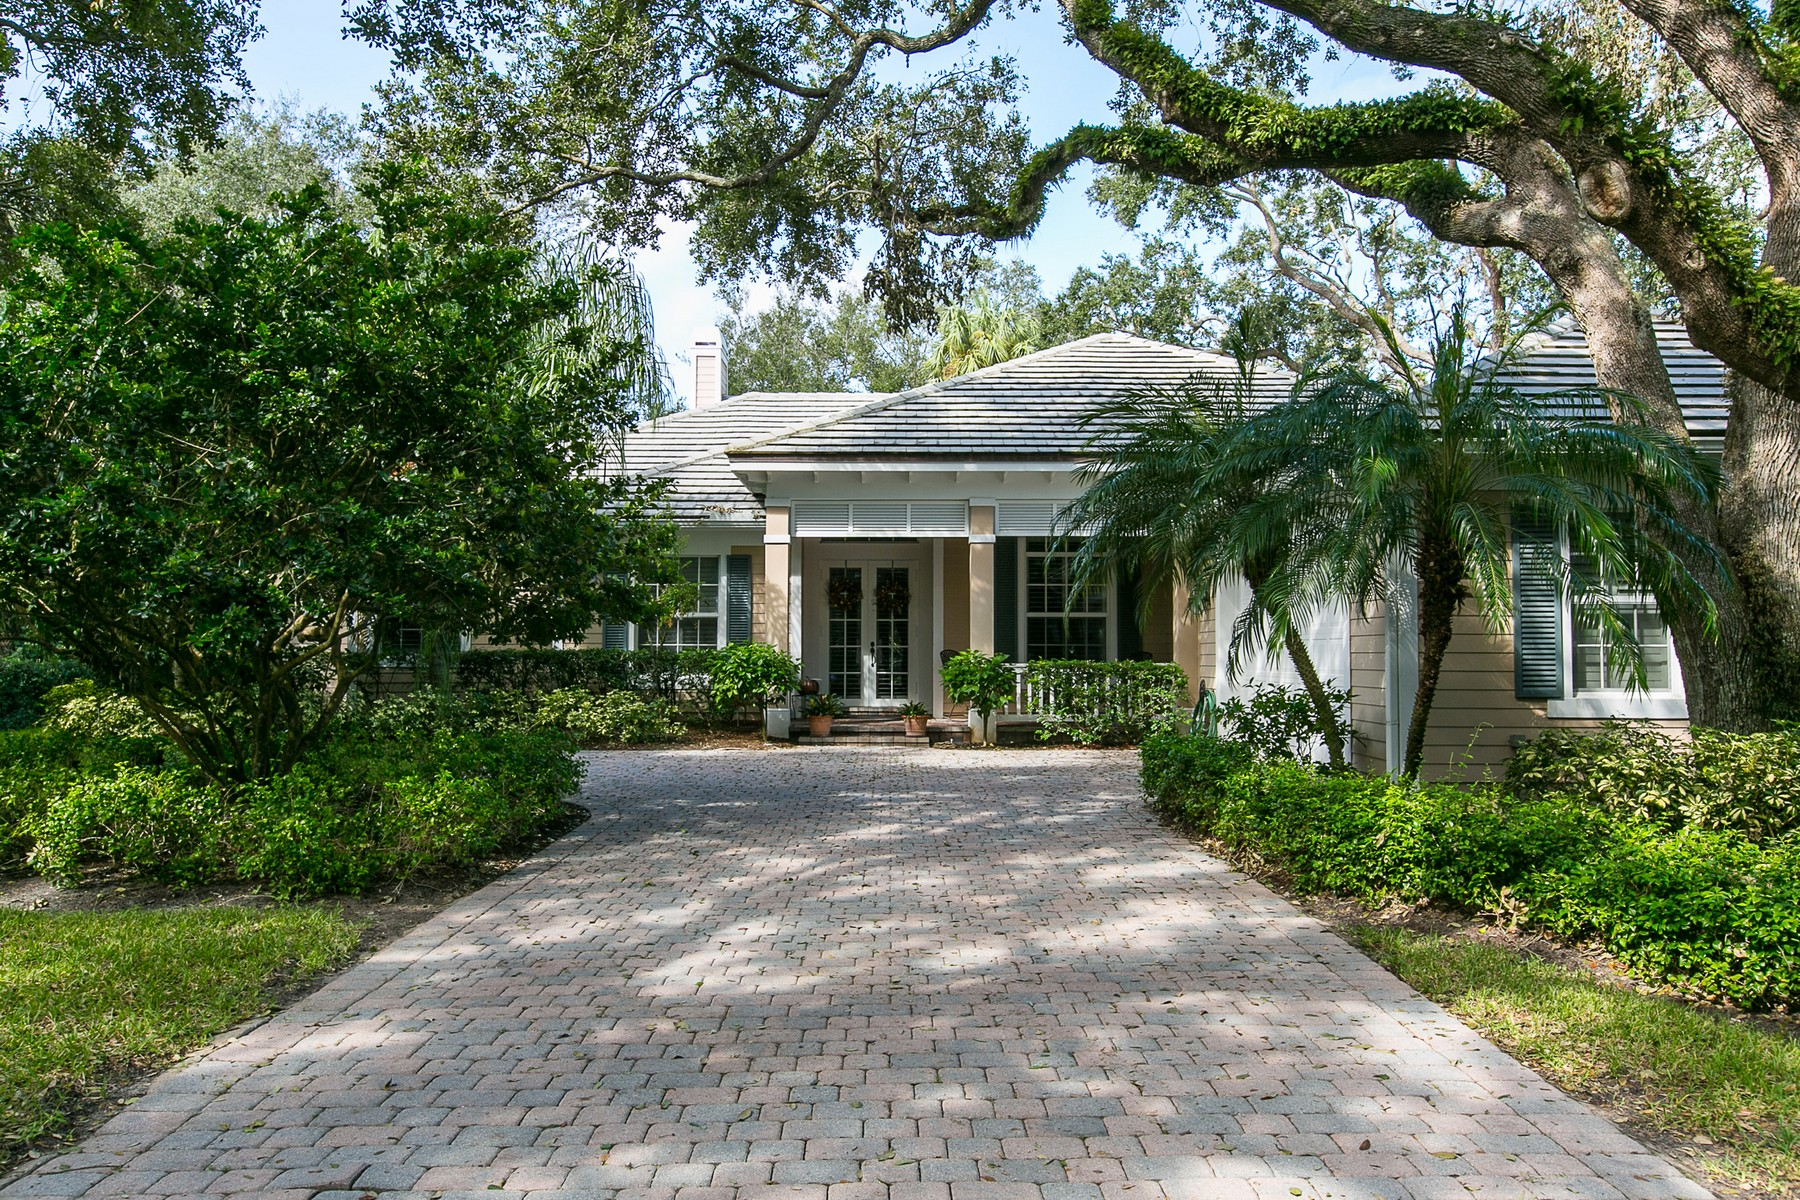 Maison unifamiliale pour l Vente à Elegant Custom Home in Indian Trails 671 N Tomahawk Trl Indian River Shores, Florida, 32963 États-Unis